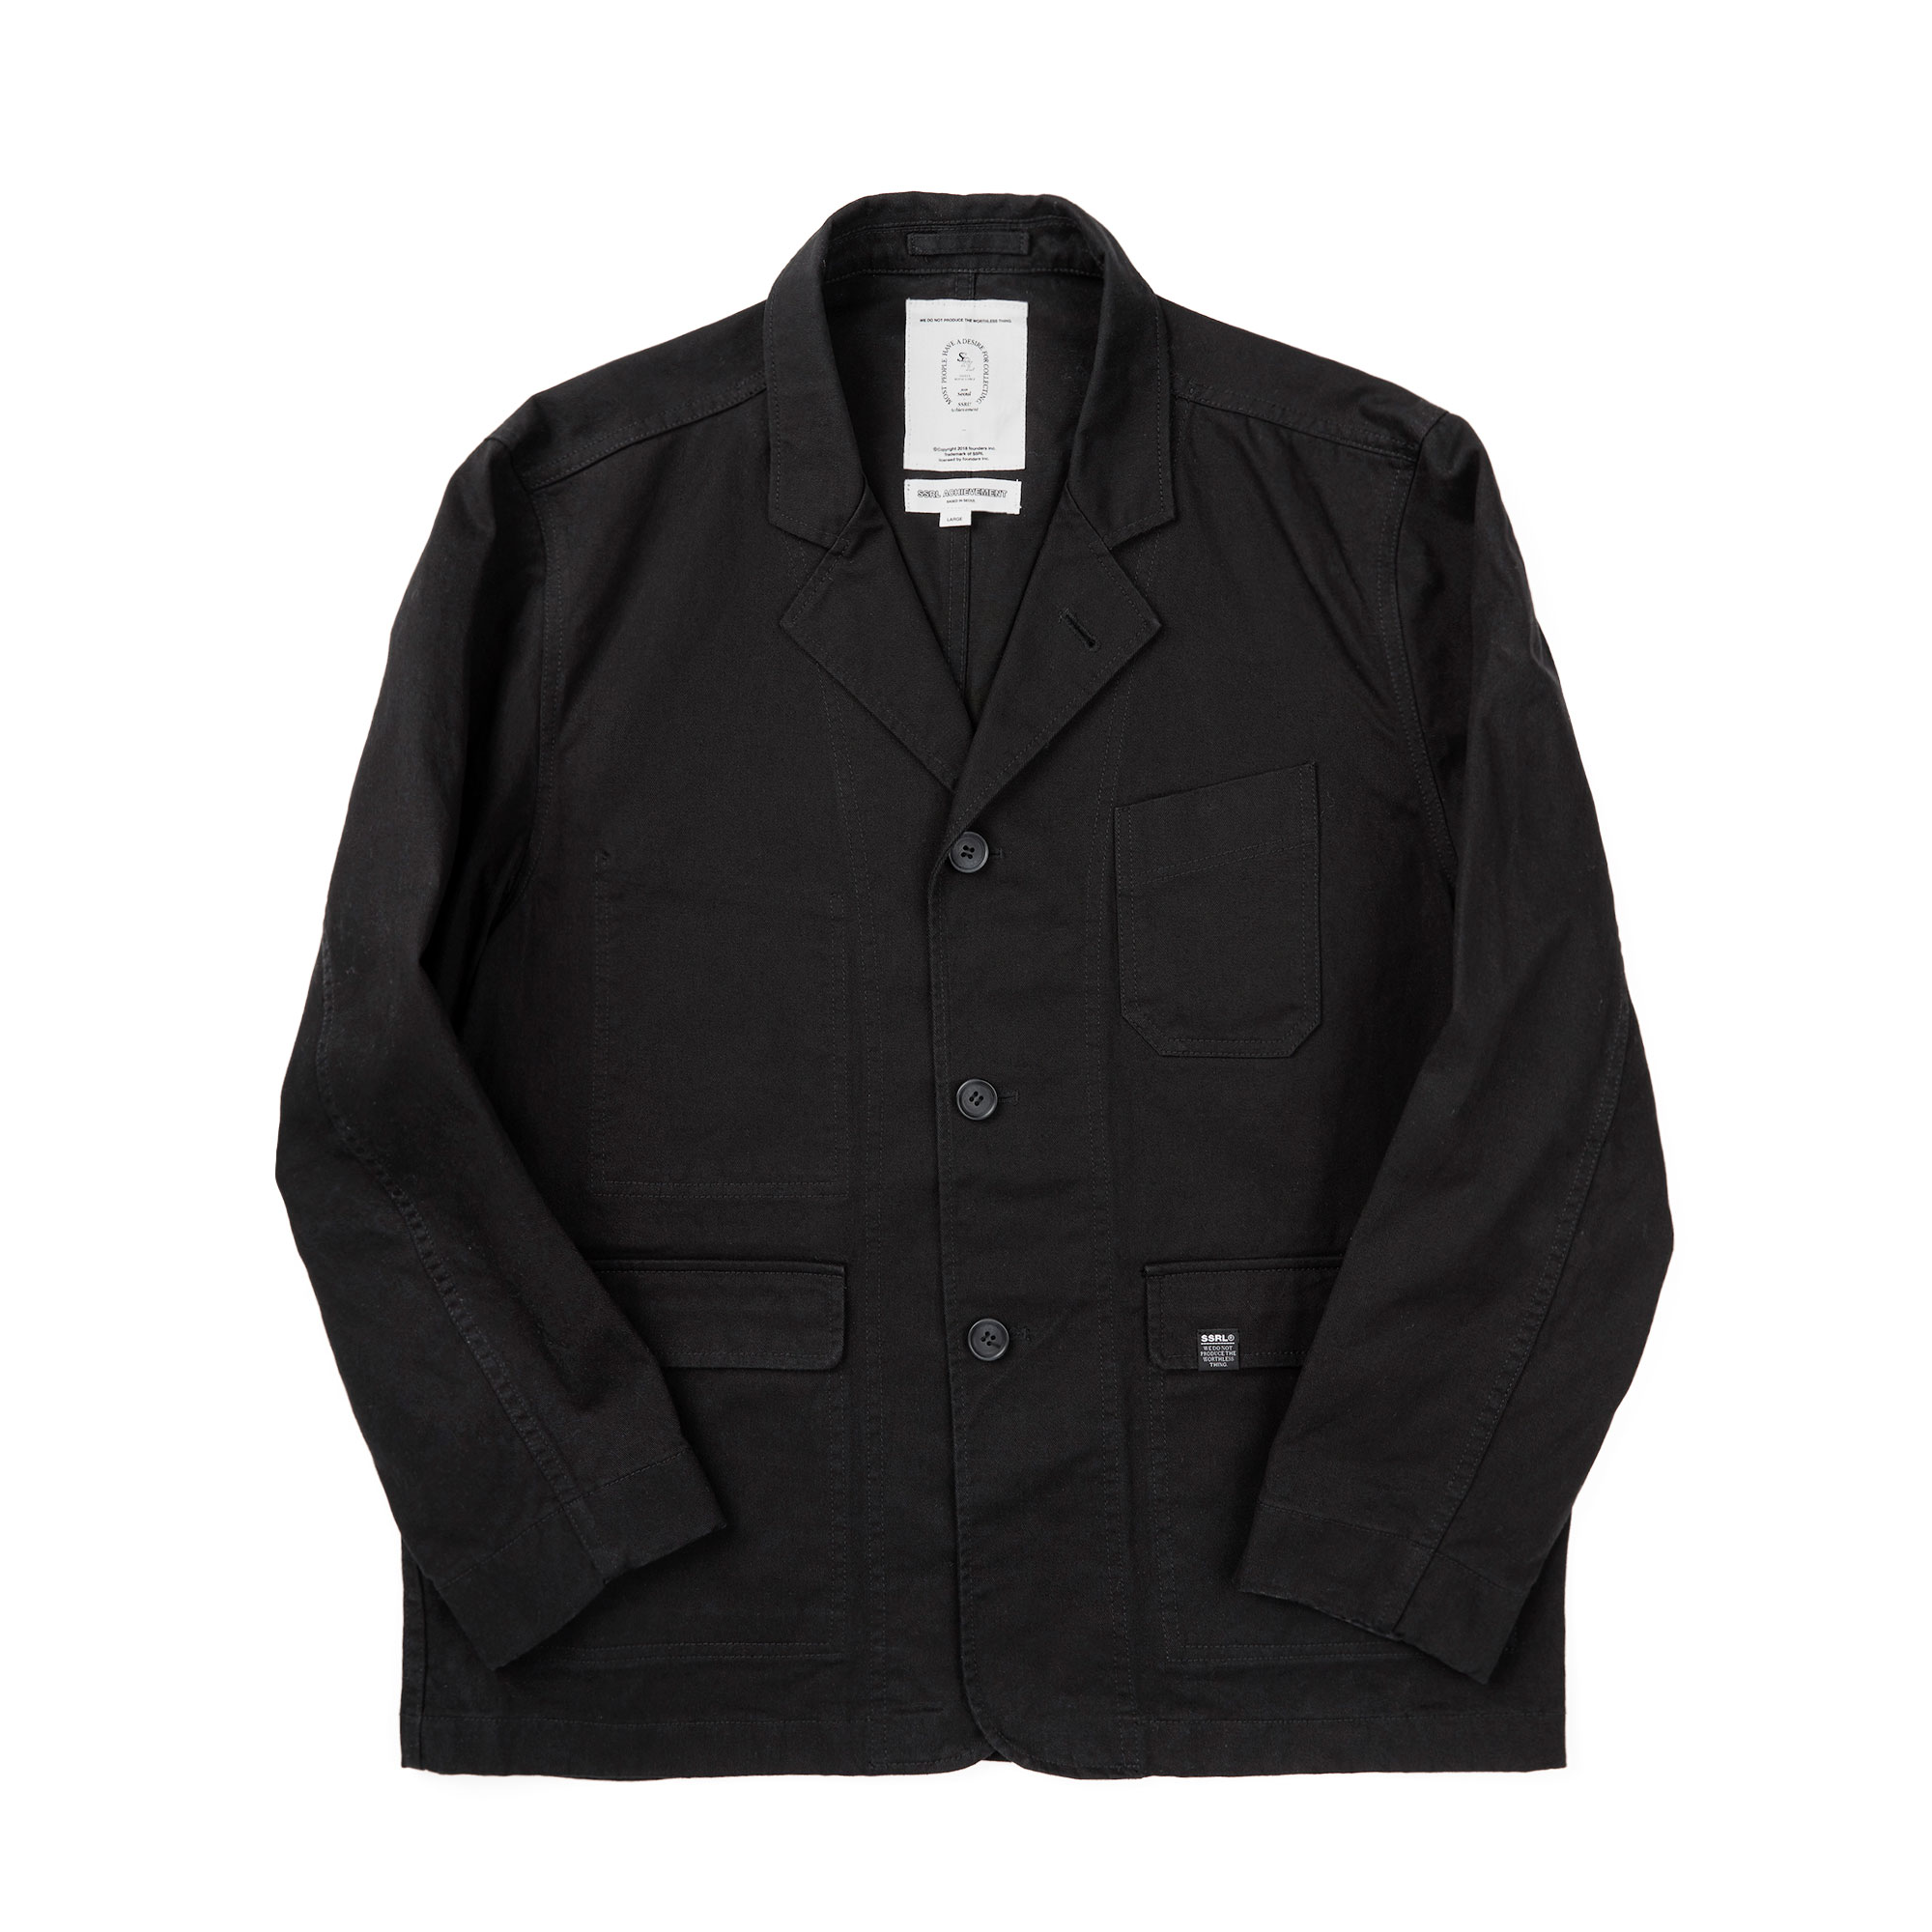 washed twill 3 buttons blazer jacket / black